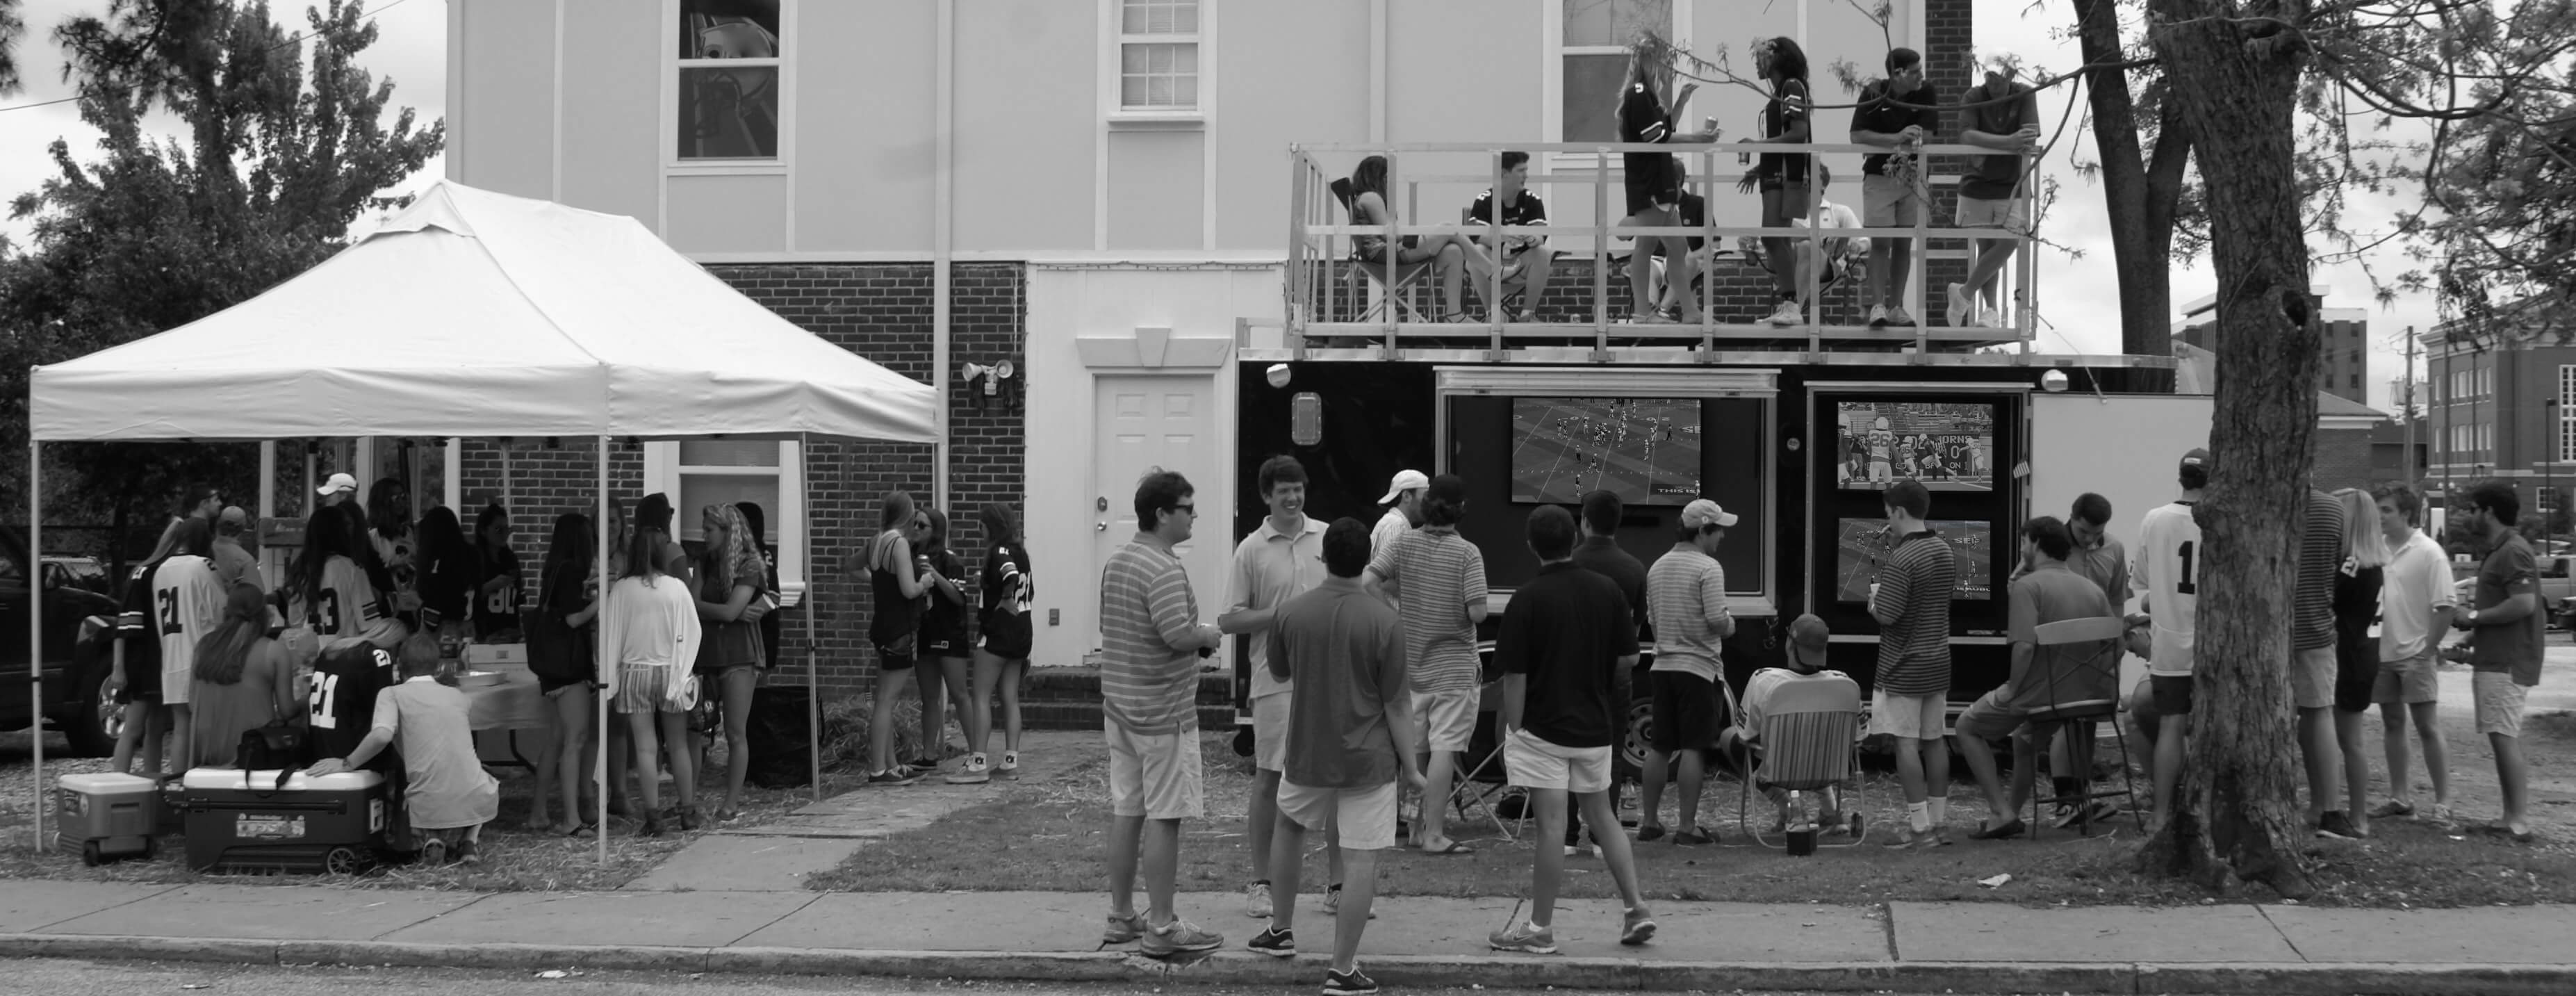 new-orleans-saints-louisiana-tailgating-services